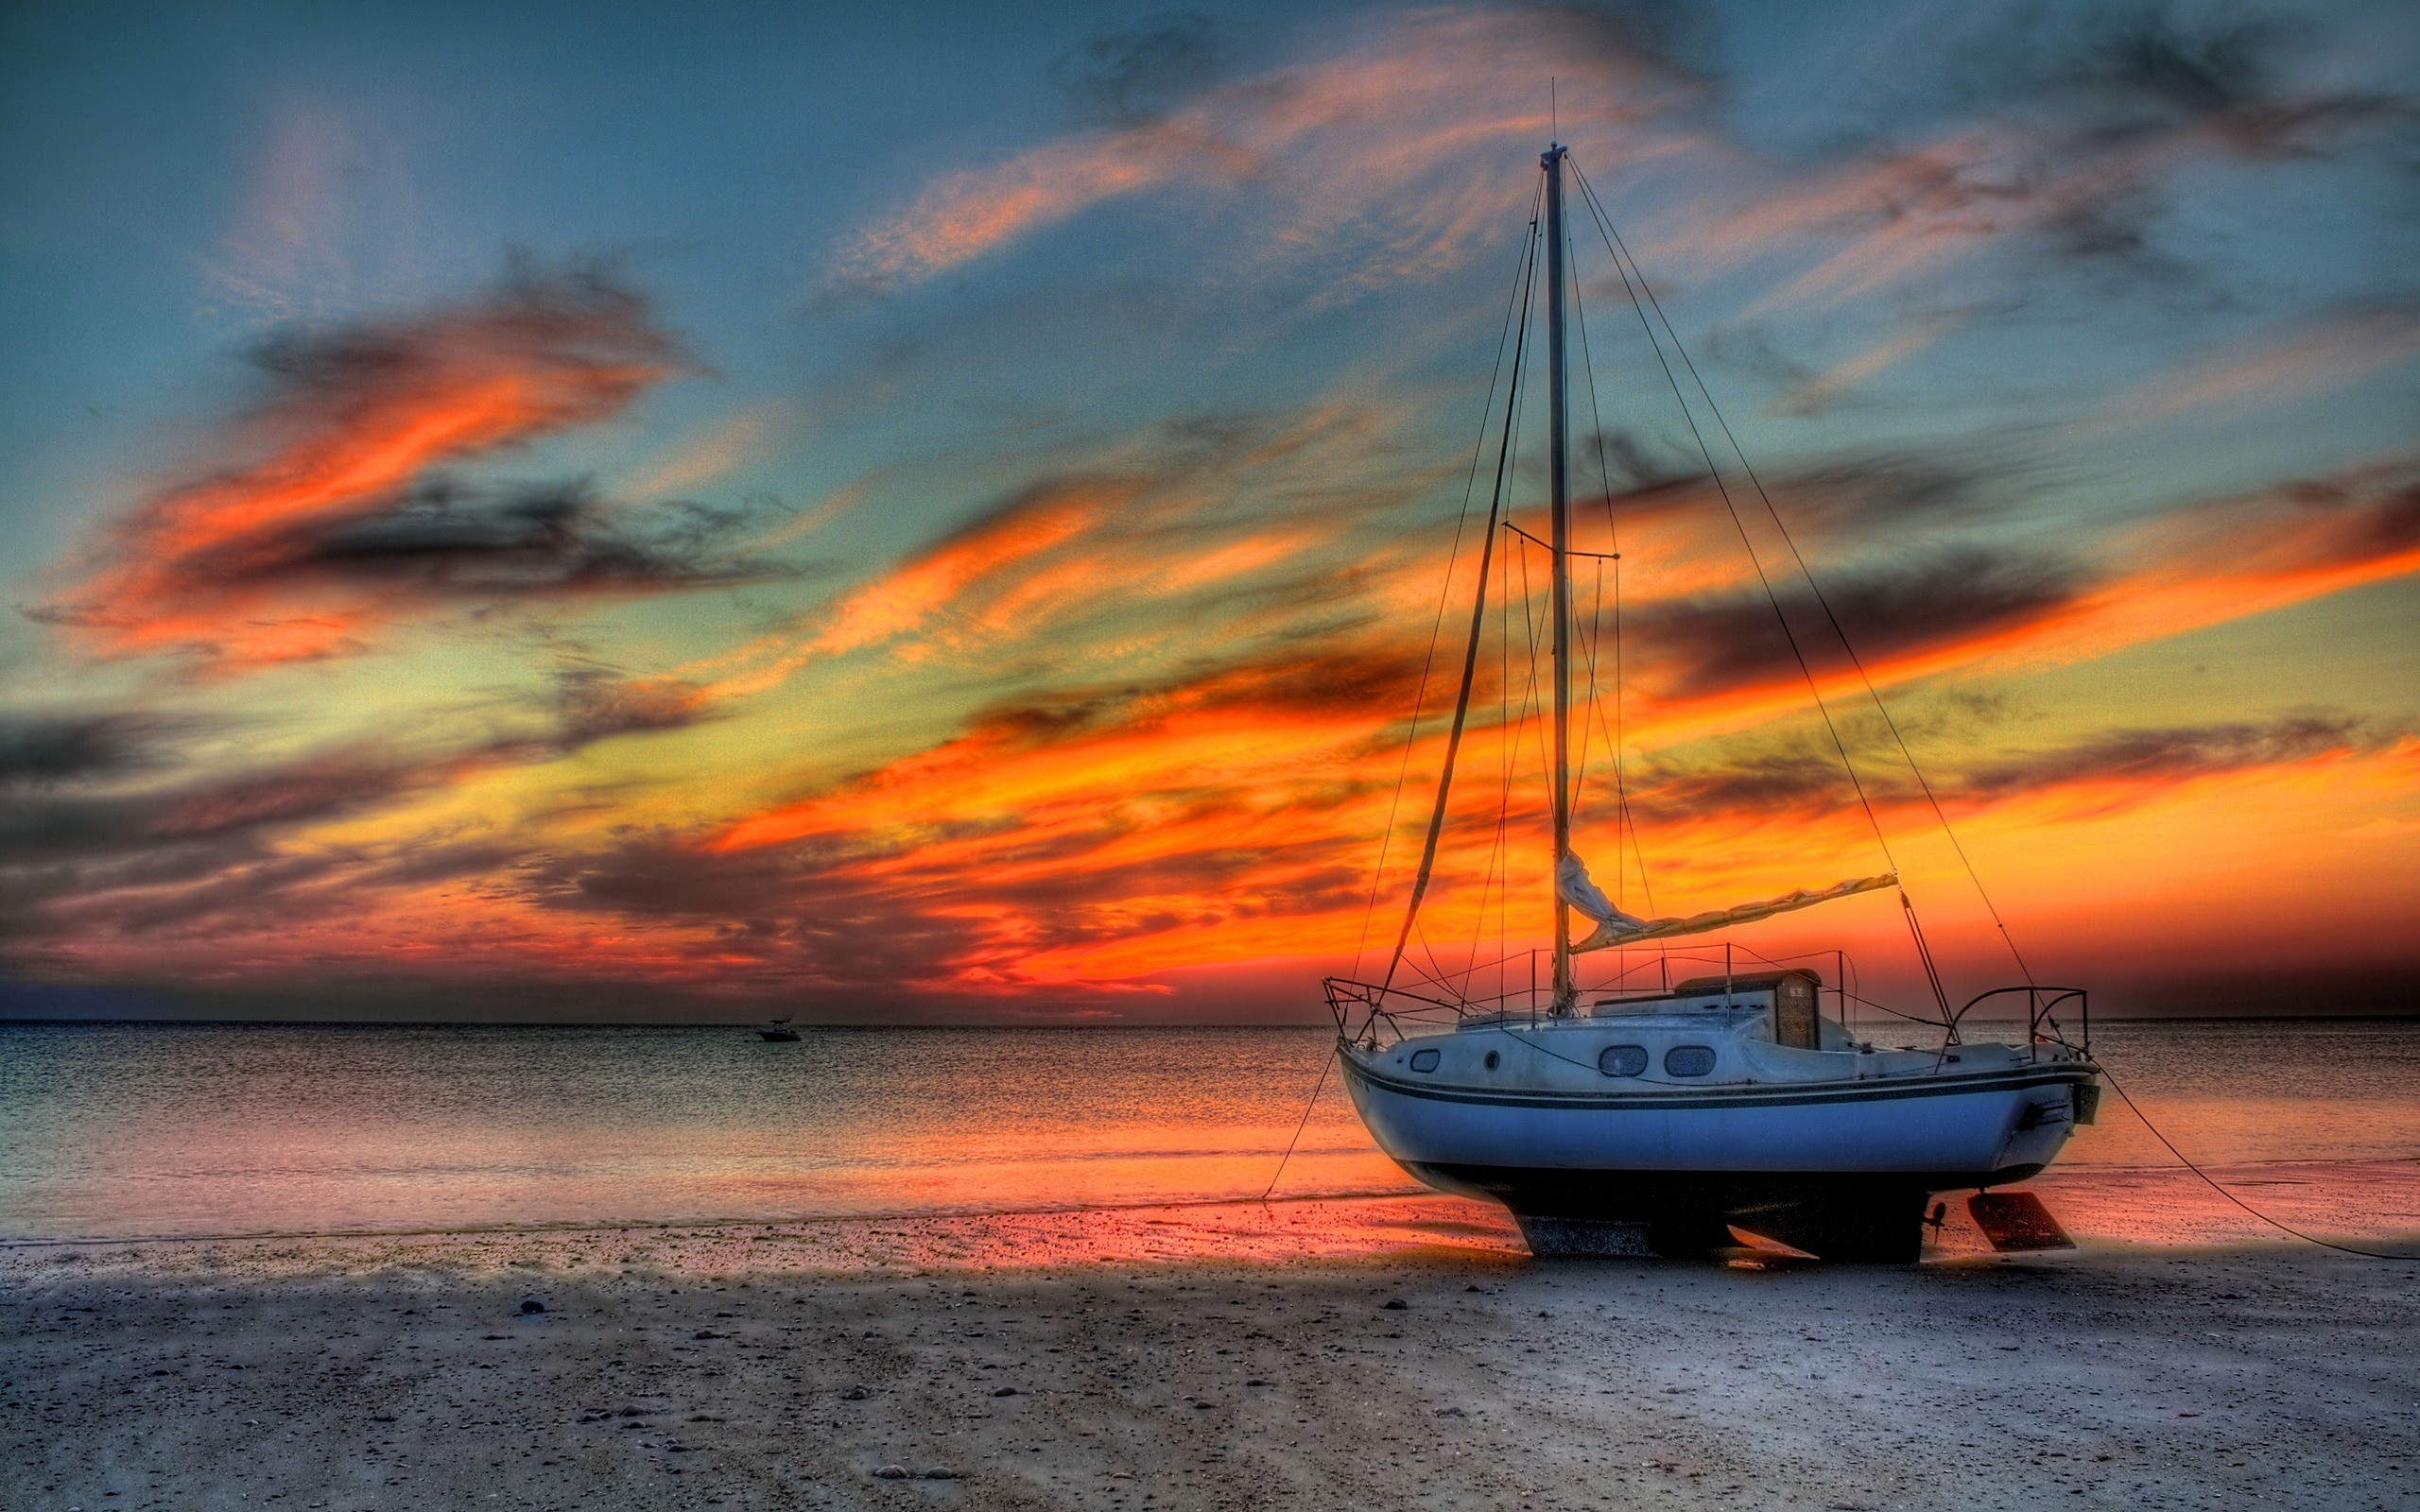 Sunsets: Nature Sand Beauty Summer Sailing Reflection Lovely Pretty ...